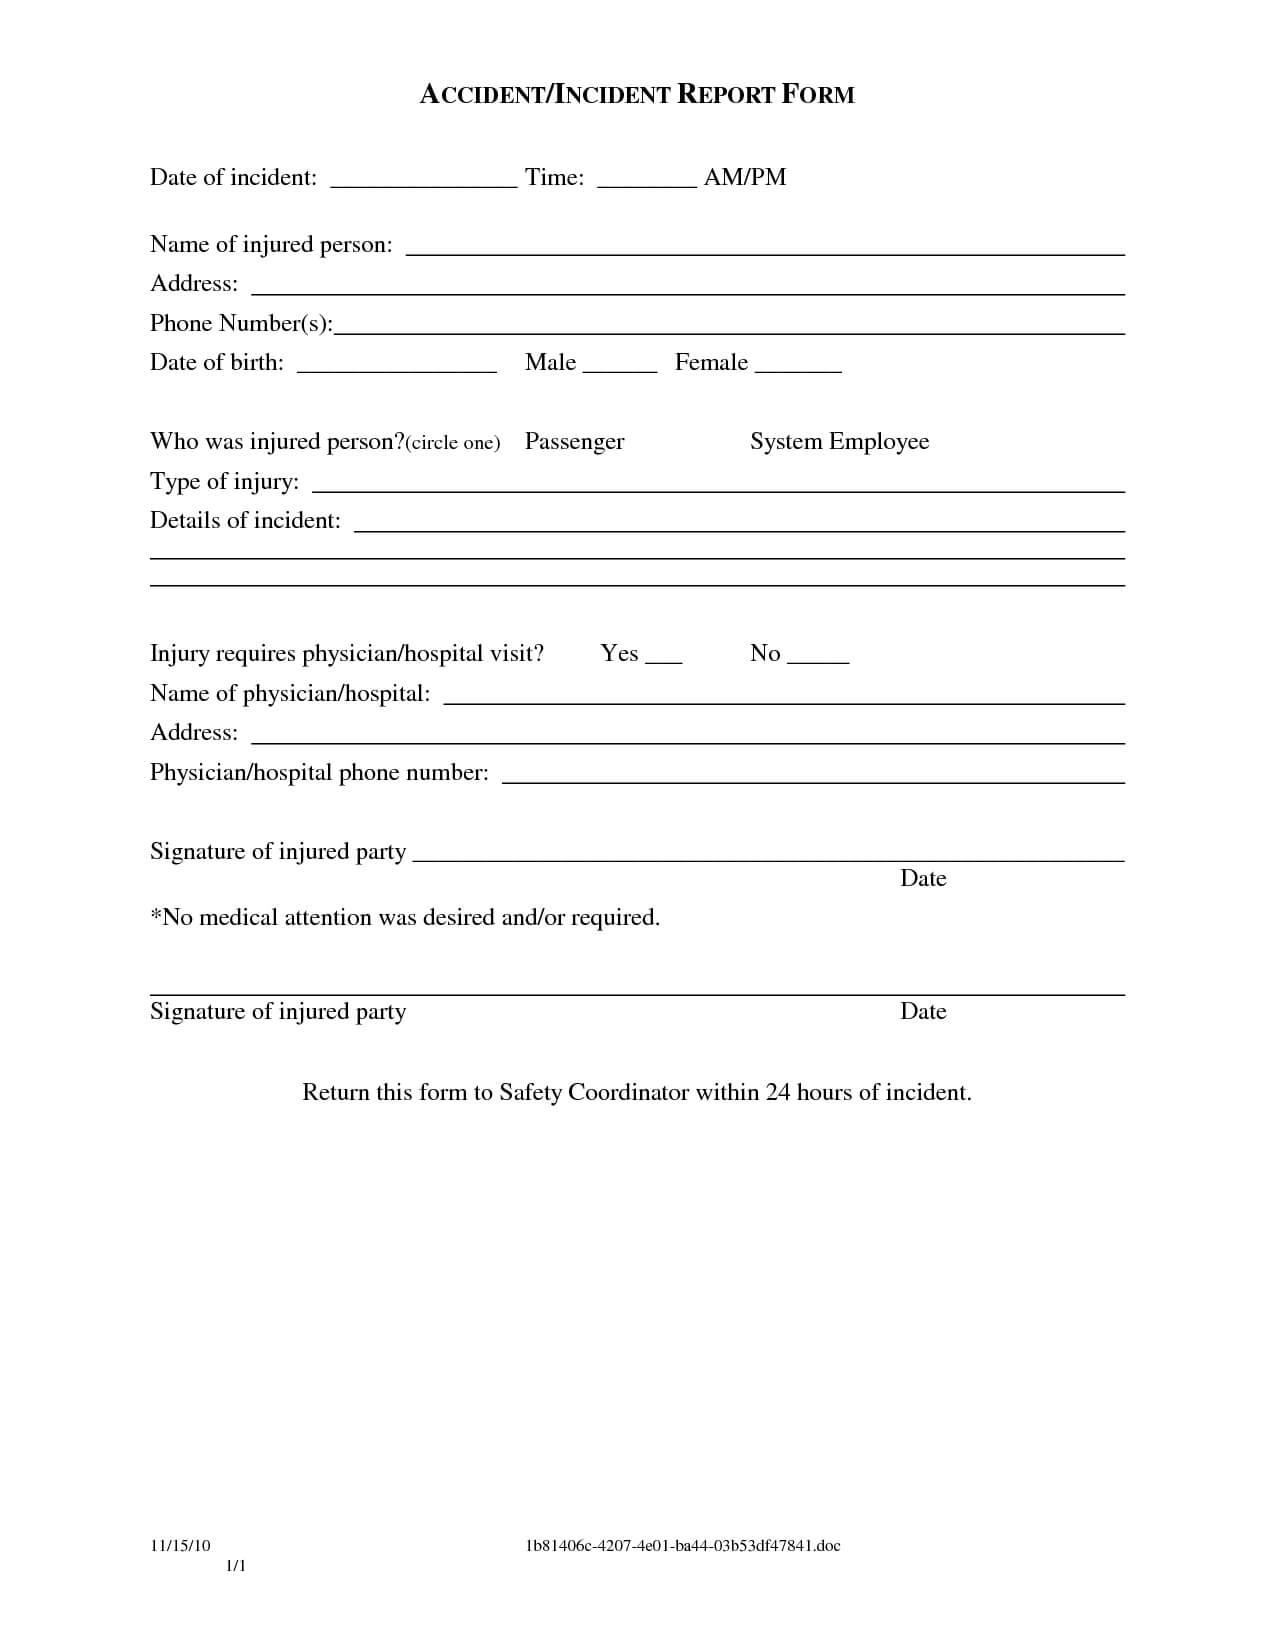 Sample Police Incident Report Template Images - Police Regarding Police Incident Report Template